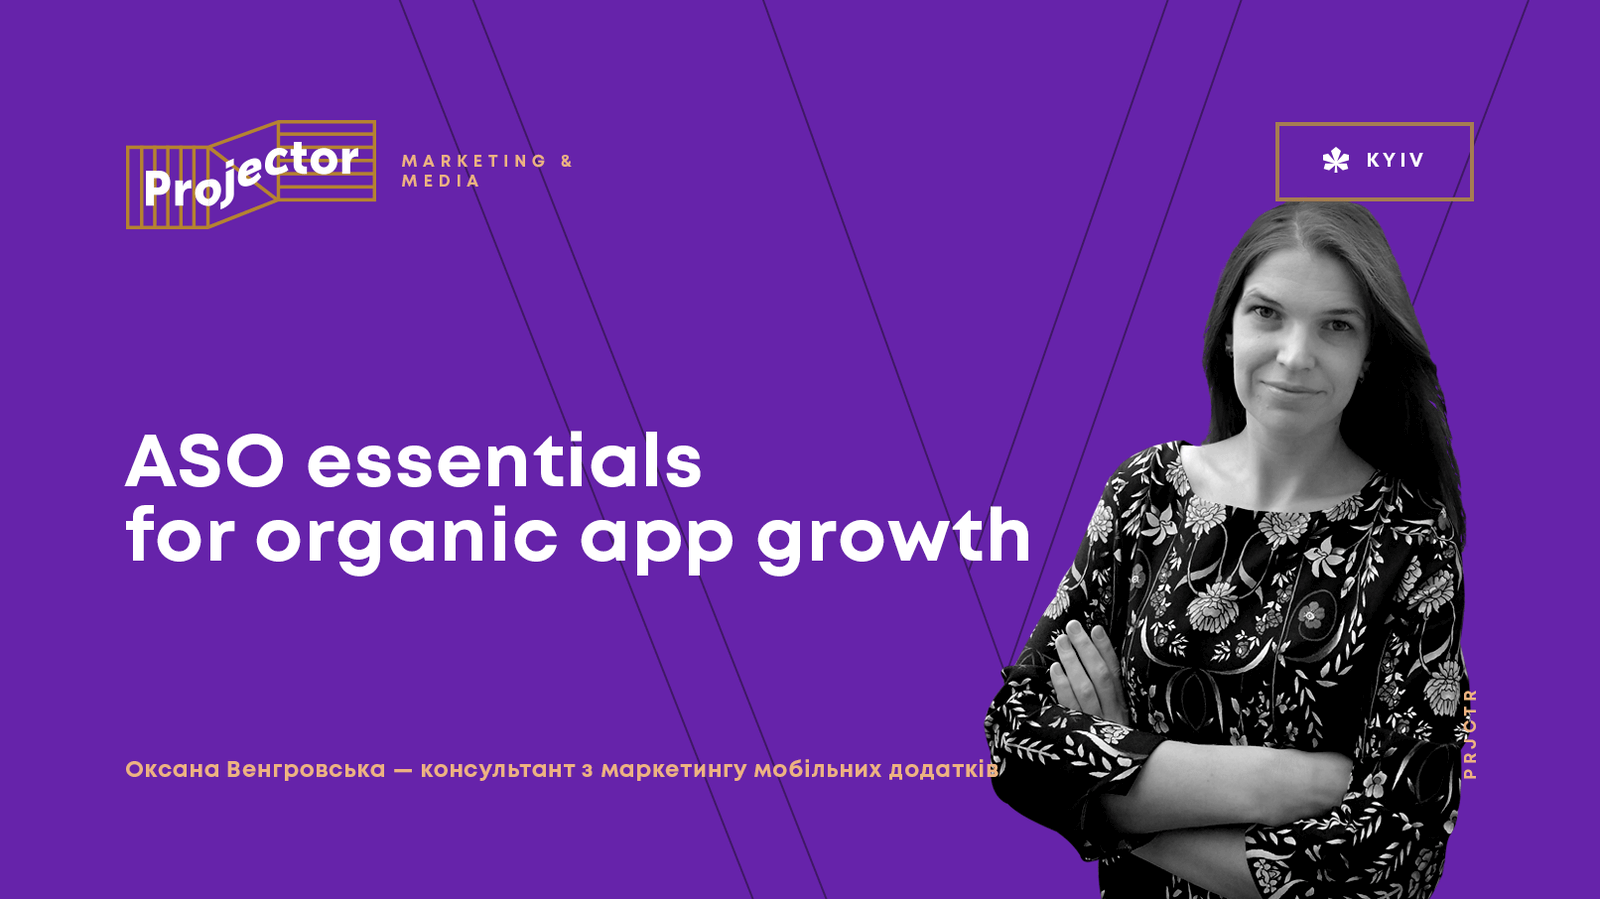 ASO essentials for organic app growth